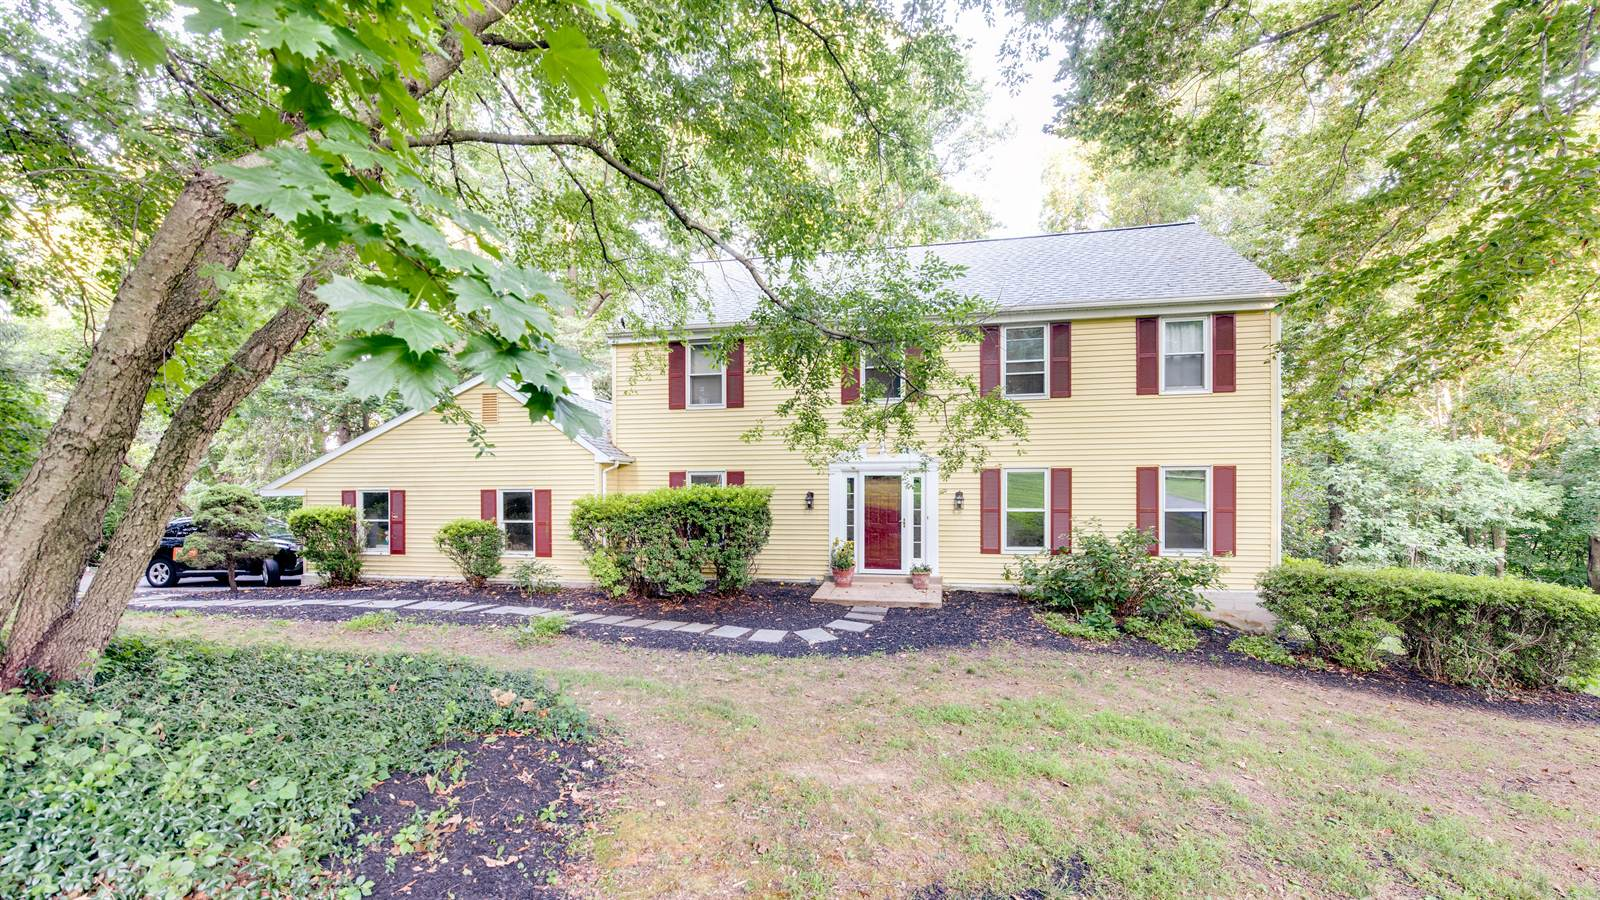 1008 Dogwood Ln., West Chester, PA 19382